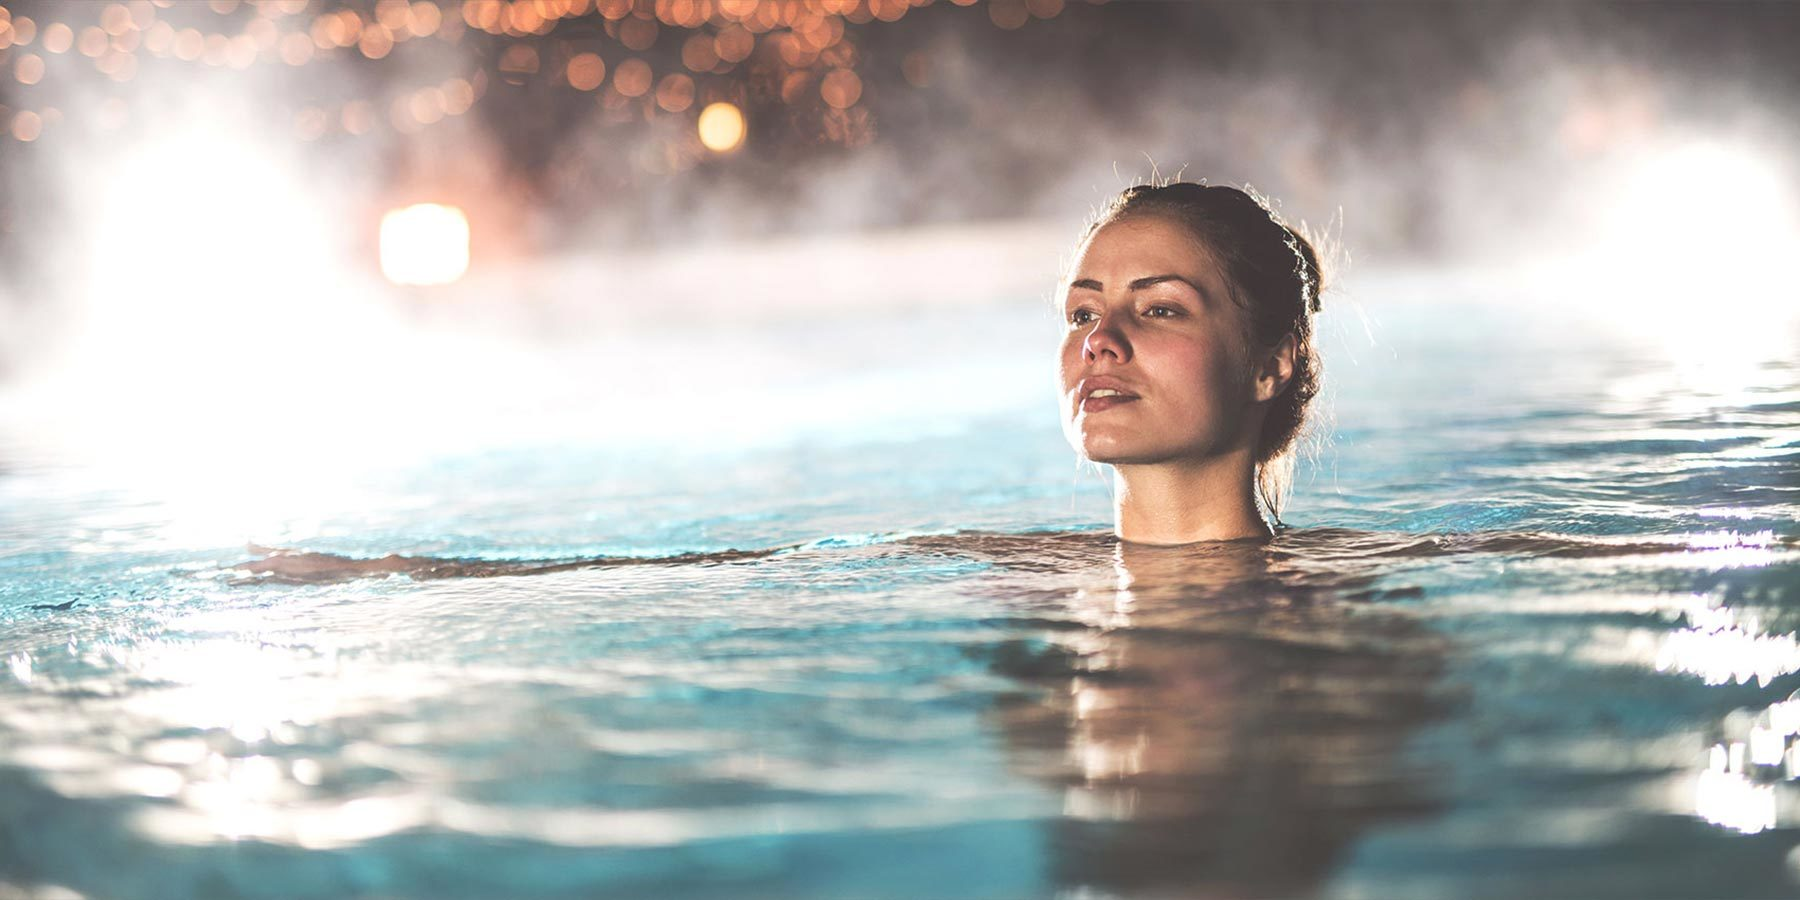 Young woman in hot pool at night